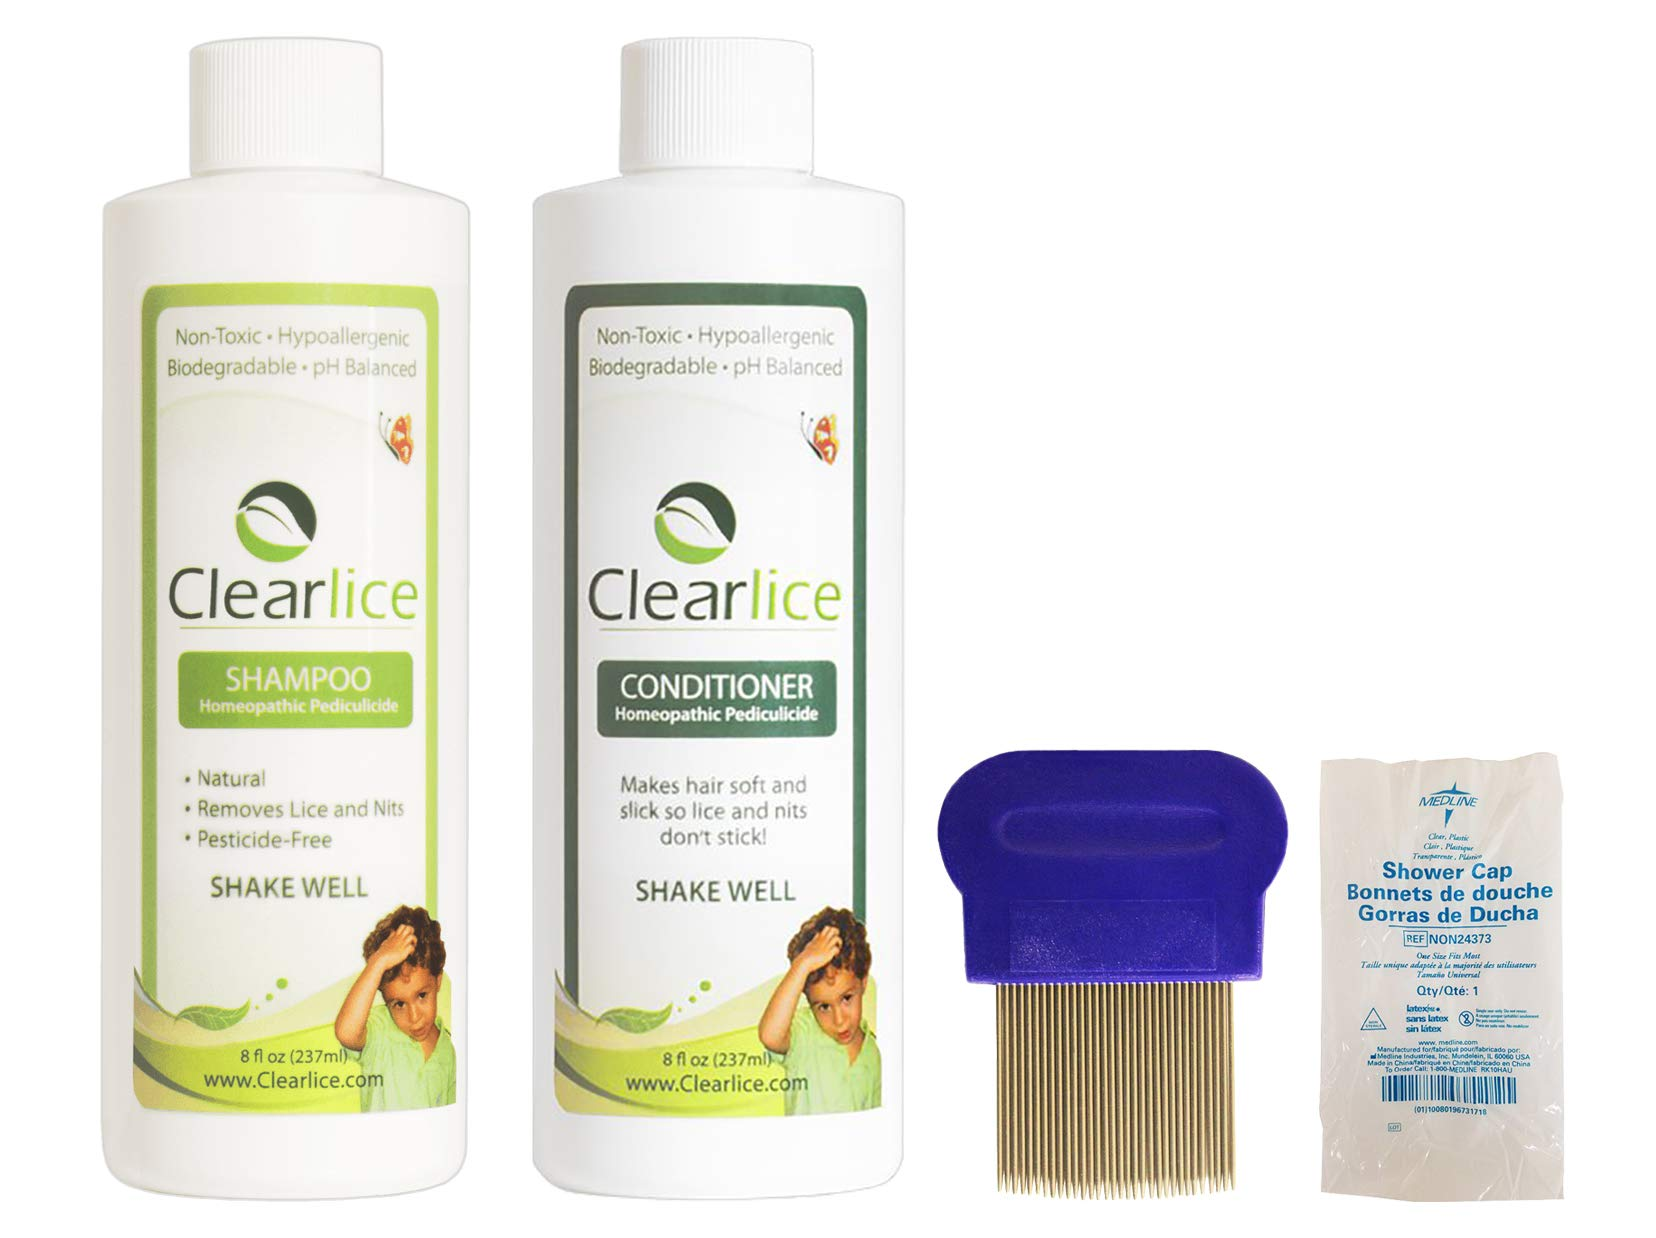 One Day Natural Lice Removal Kit - Kills Super Lice and Nits Pesticide Free, Safe & Non-Toxic and - Treats Head and Home - Made in FDA Approved Lab